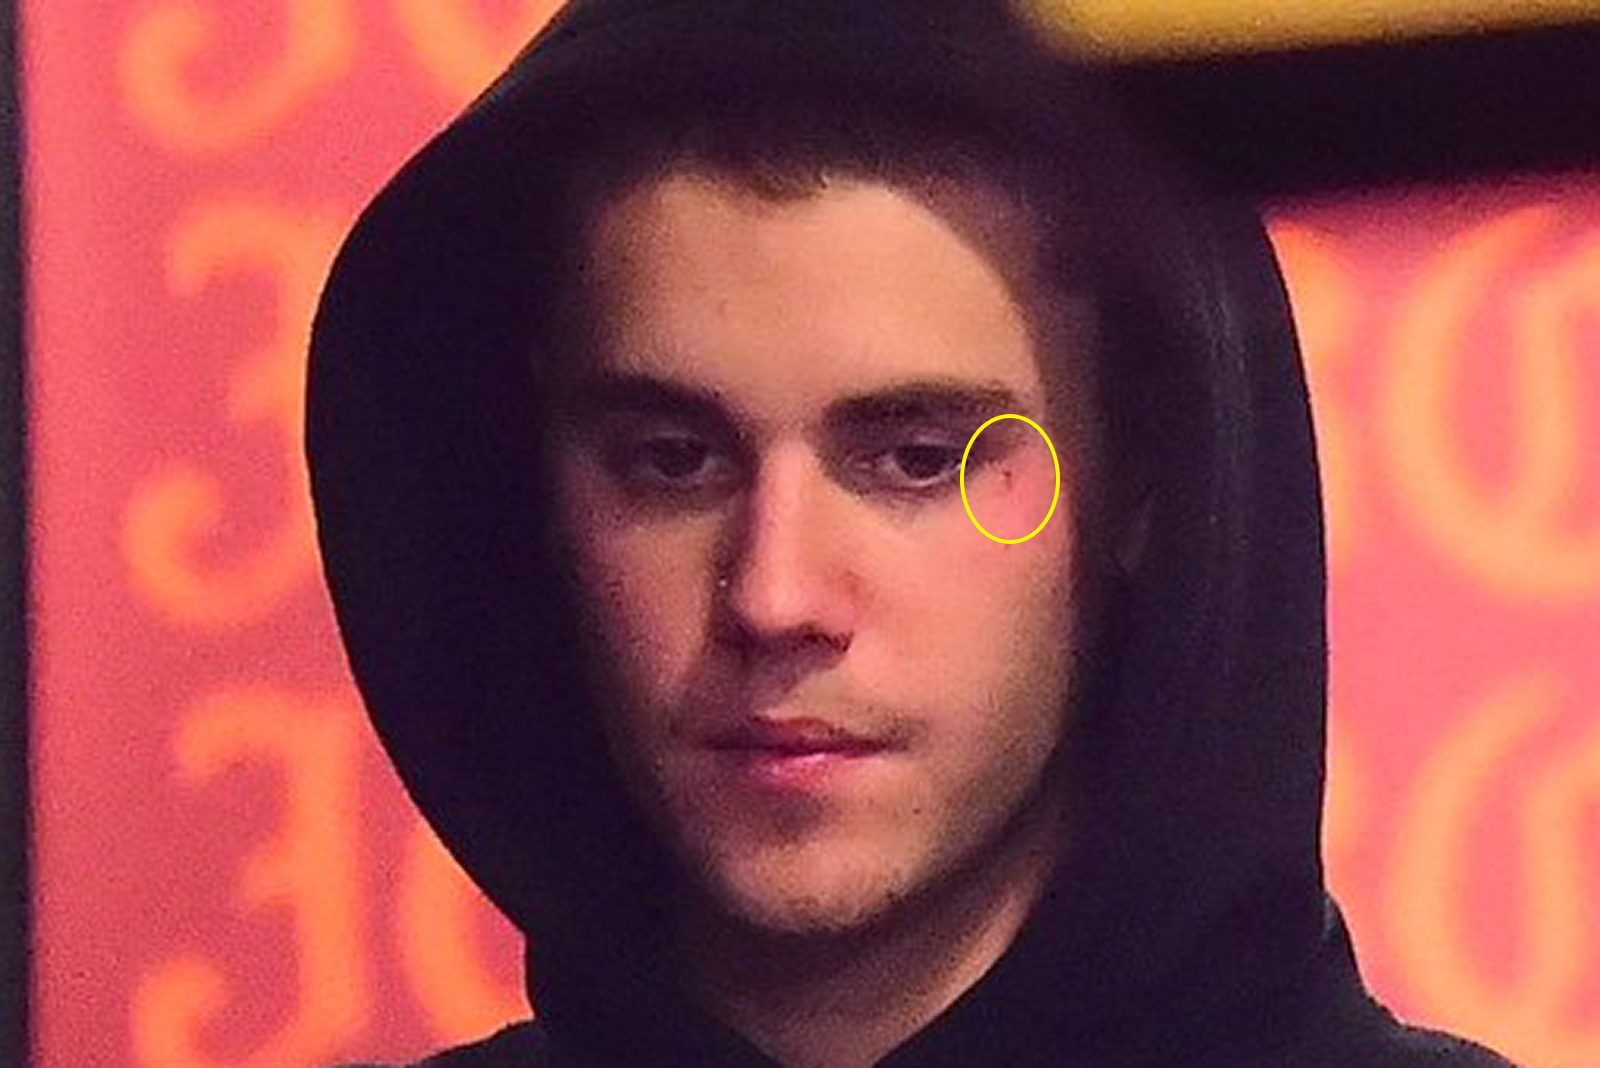 Justin Bieber face tattoos 2019